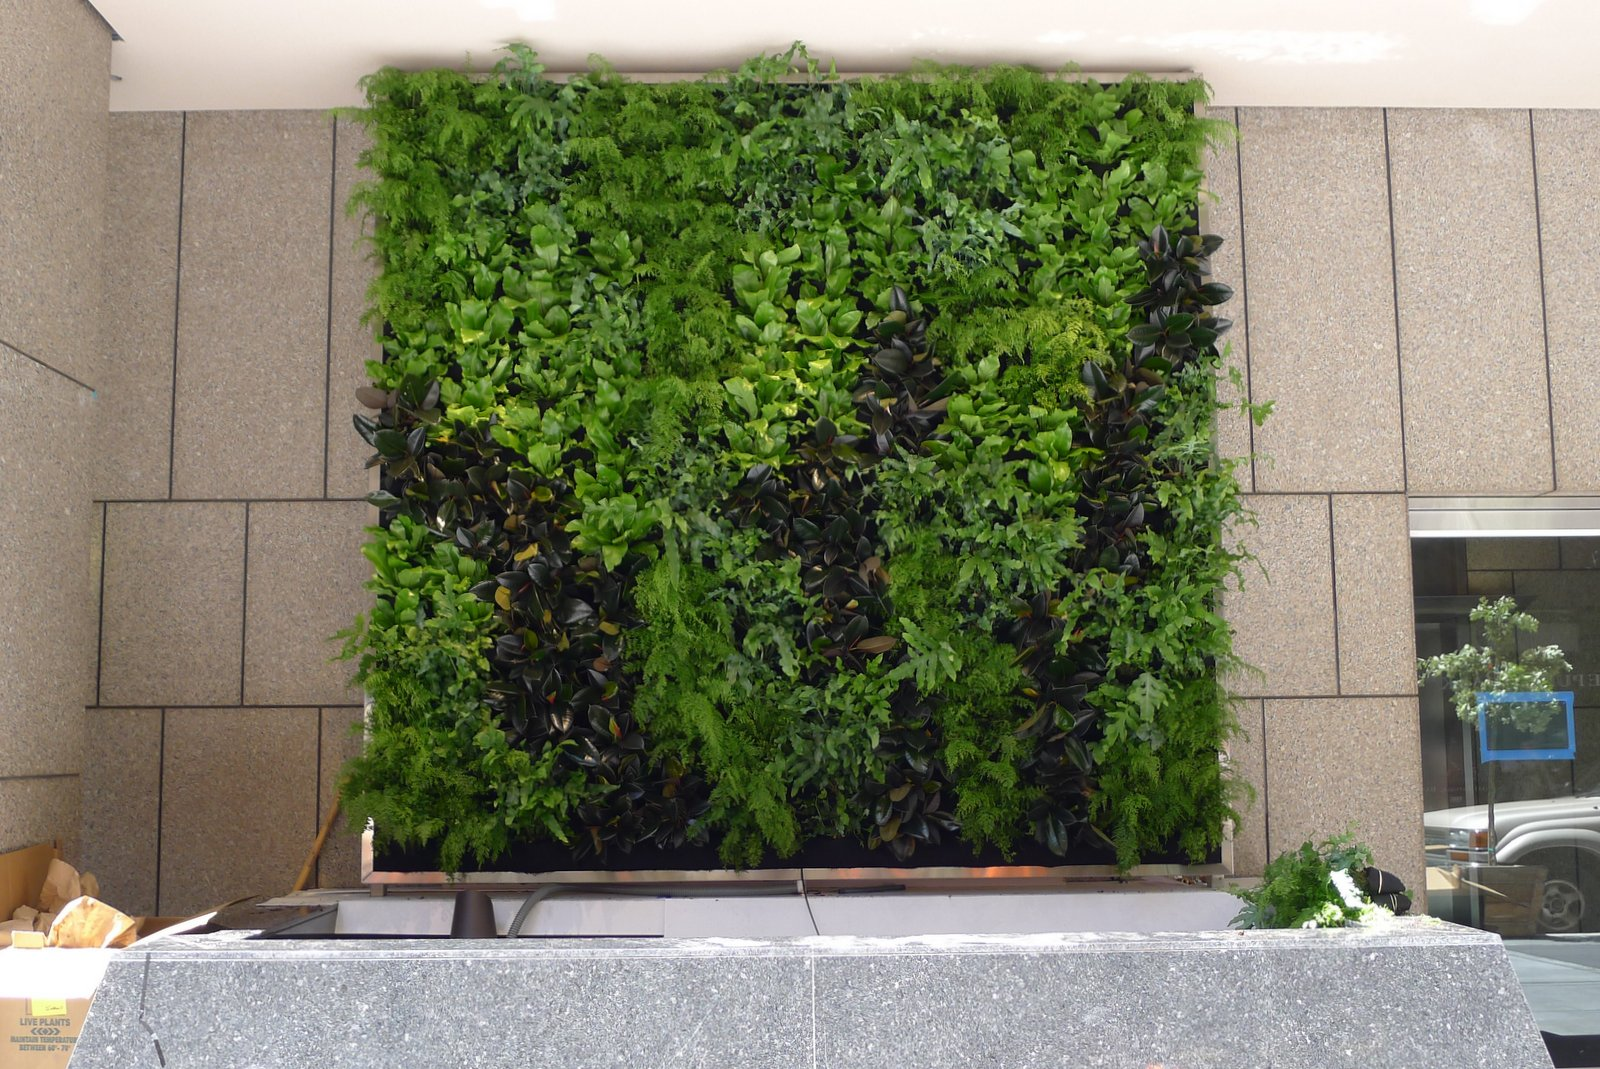 Plants on walls vertical garden systems june 2012 for Vertical garden wall systems